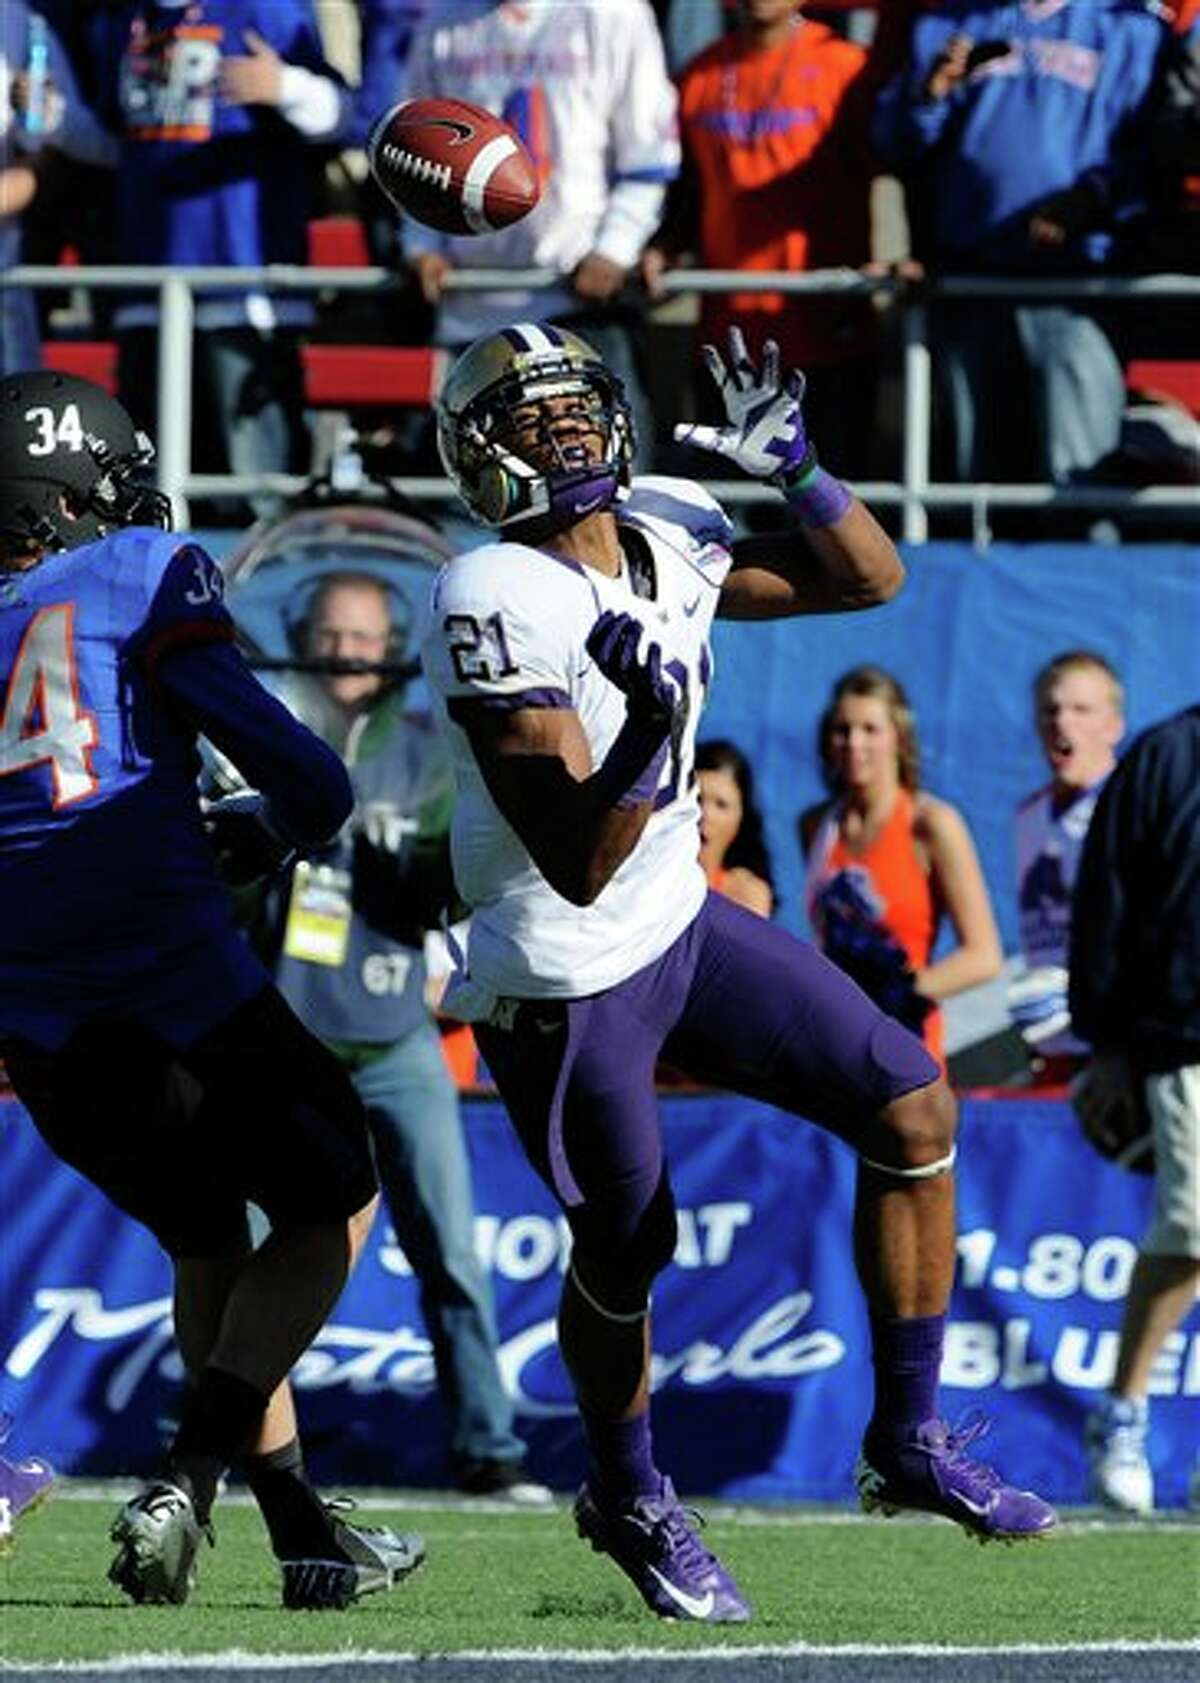 Washington cornerback Marcus Peters breaks up a reception against Boise State Kirby Moore (34) during first half of the MAACO Bowl NCAA college football game on Saturday, Dec. 22, 2012, in Las Vegas.